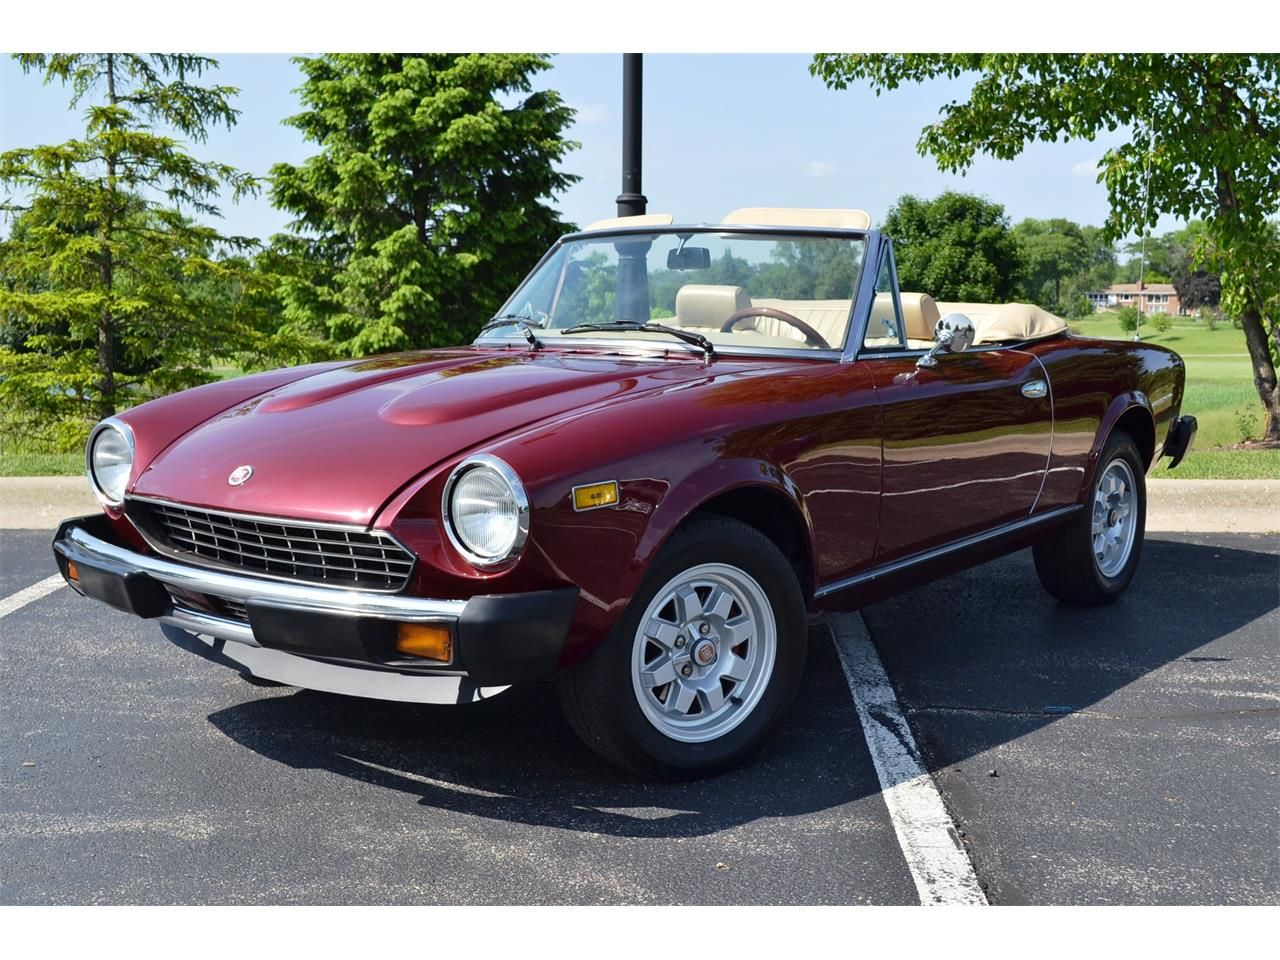 New Car Old Car 1980 Fiat Spider Fiat Spider Fiat Roadsters